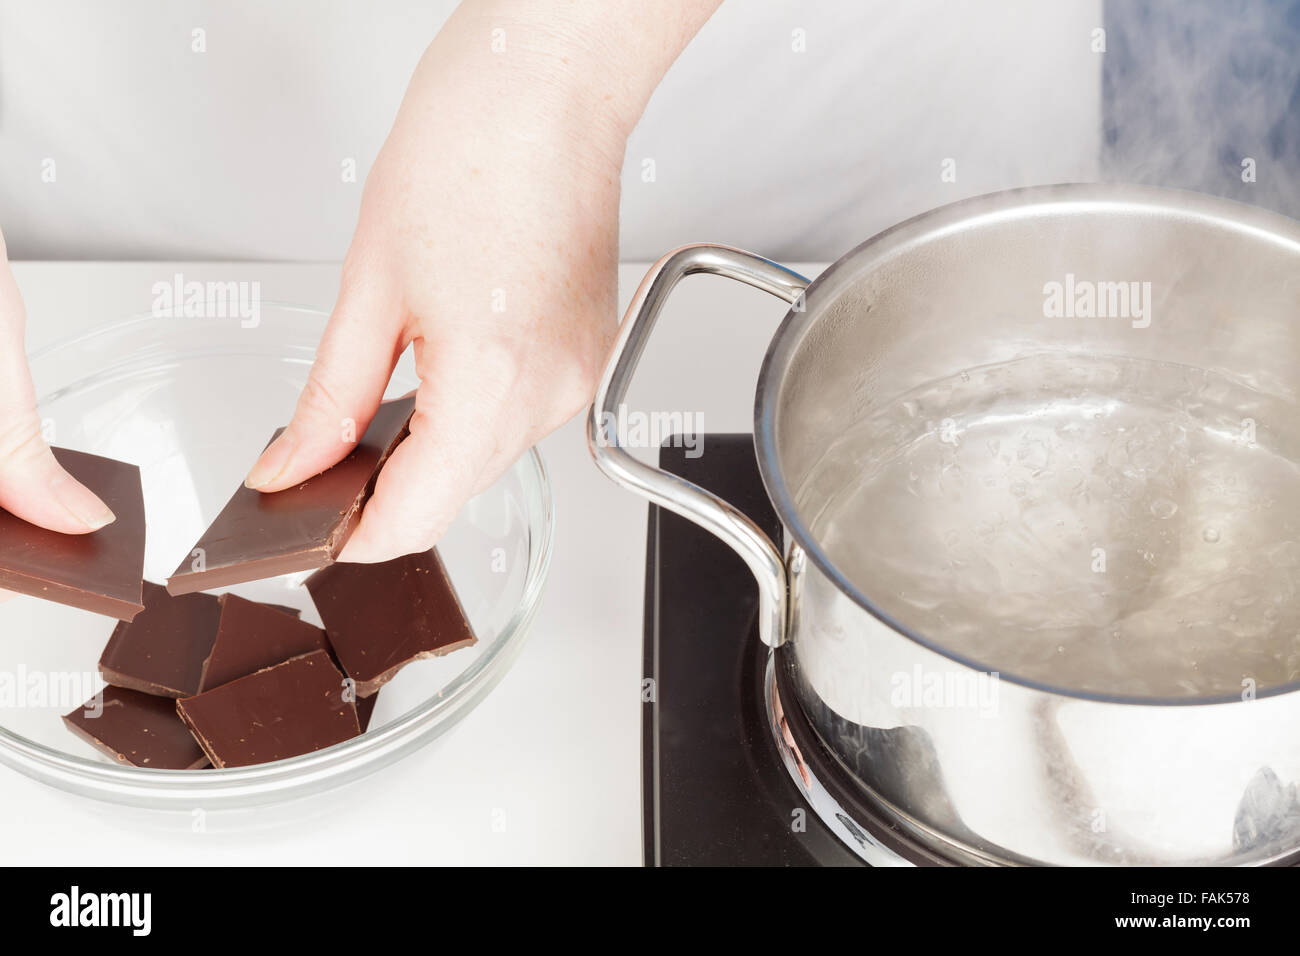 breaking chocolate to melt in bain marie - Stock Image